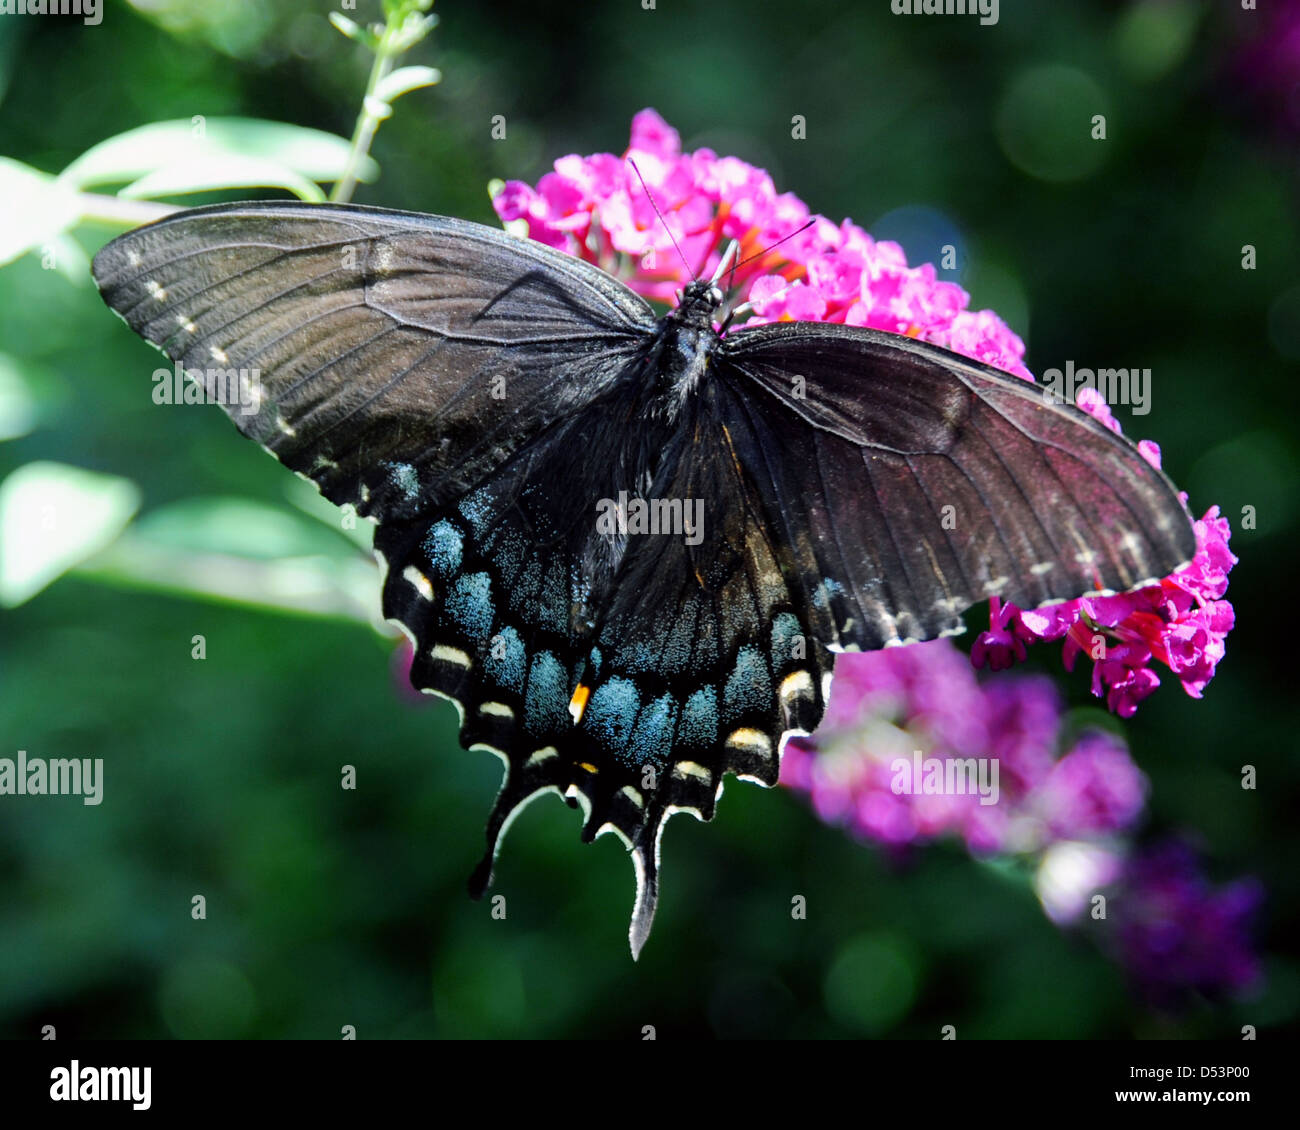 Black Swallowtail butterfly family Papilionidae Omithoptera birdwing butterflies, - Stock Image